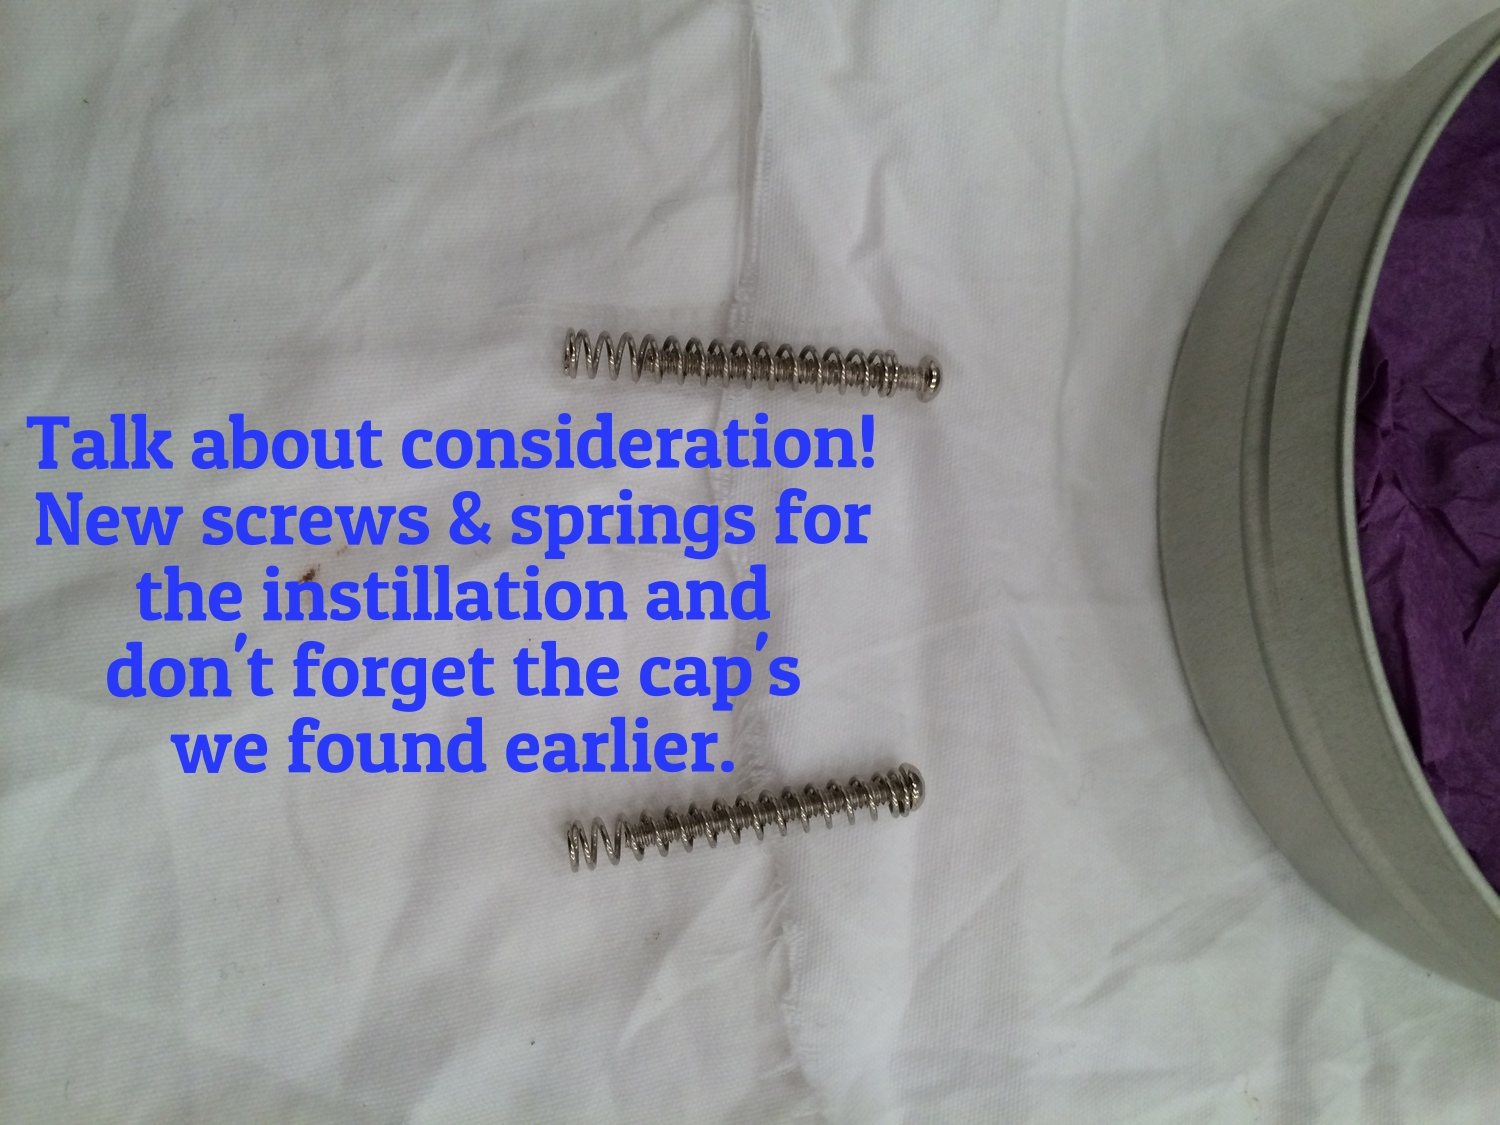 These guys even toss in a set of new springs and screws for the installation! All in all a great presentation and thoughtfull additions to make installation easier. A+ gents.